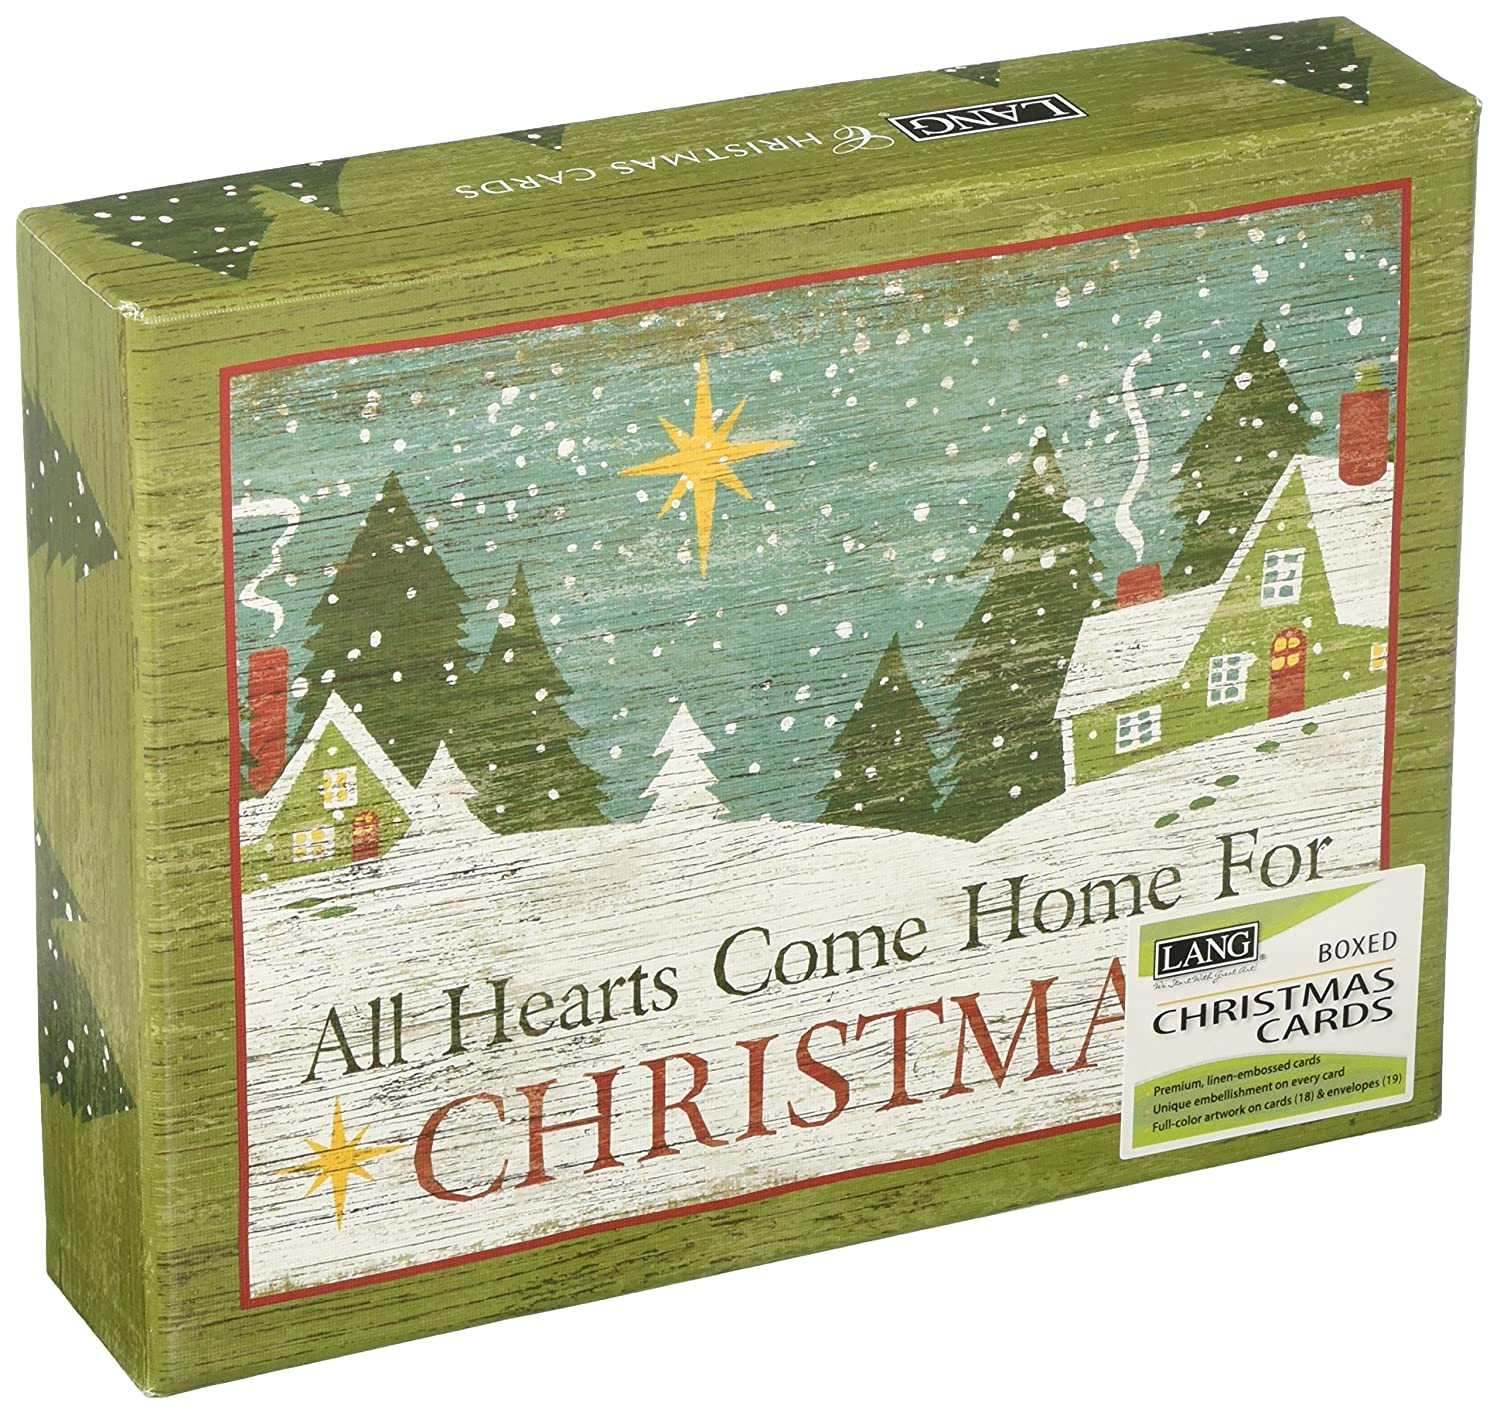 Amazon.com : Lang Christmas Heart Boxed Christmas Card by Suzanne ...